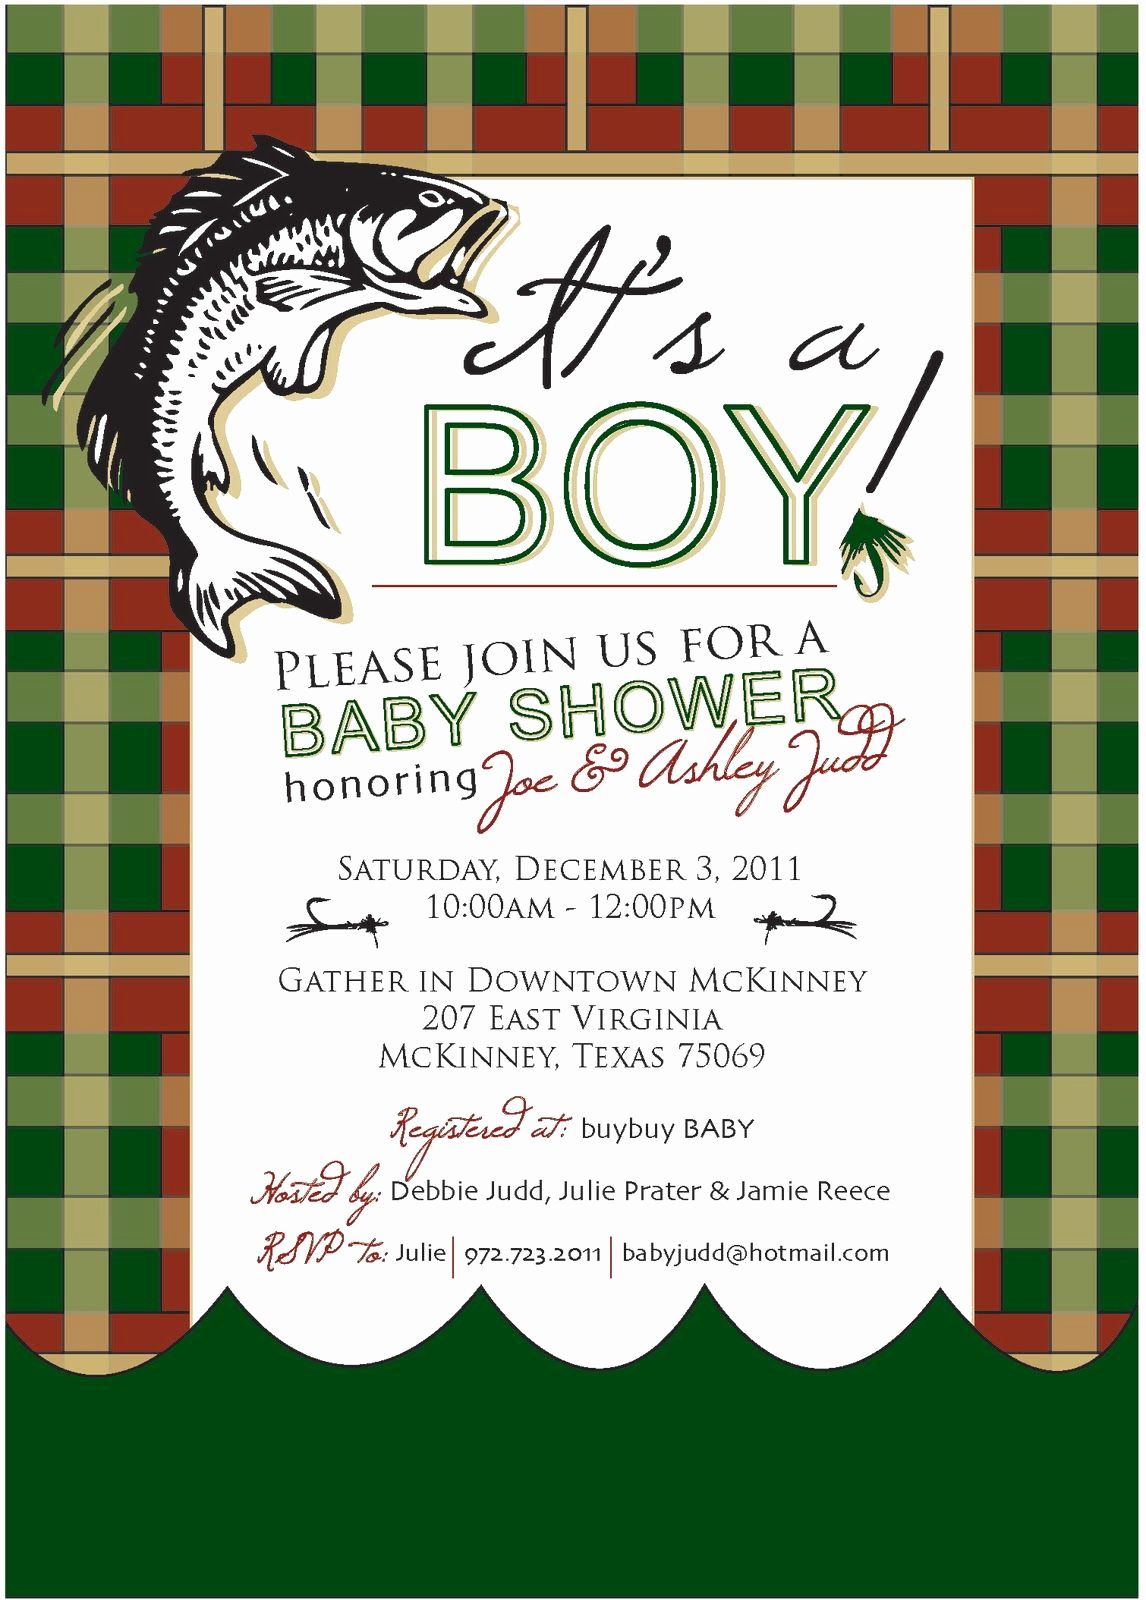 Baby Boy Invitation Ideas New Best Baby Shower Invitation Ever Fun Party Ideas